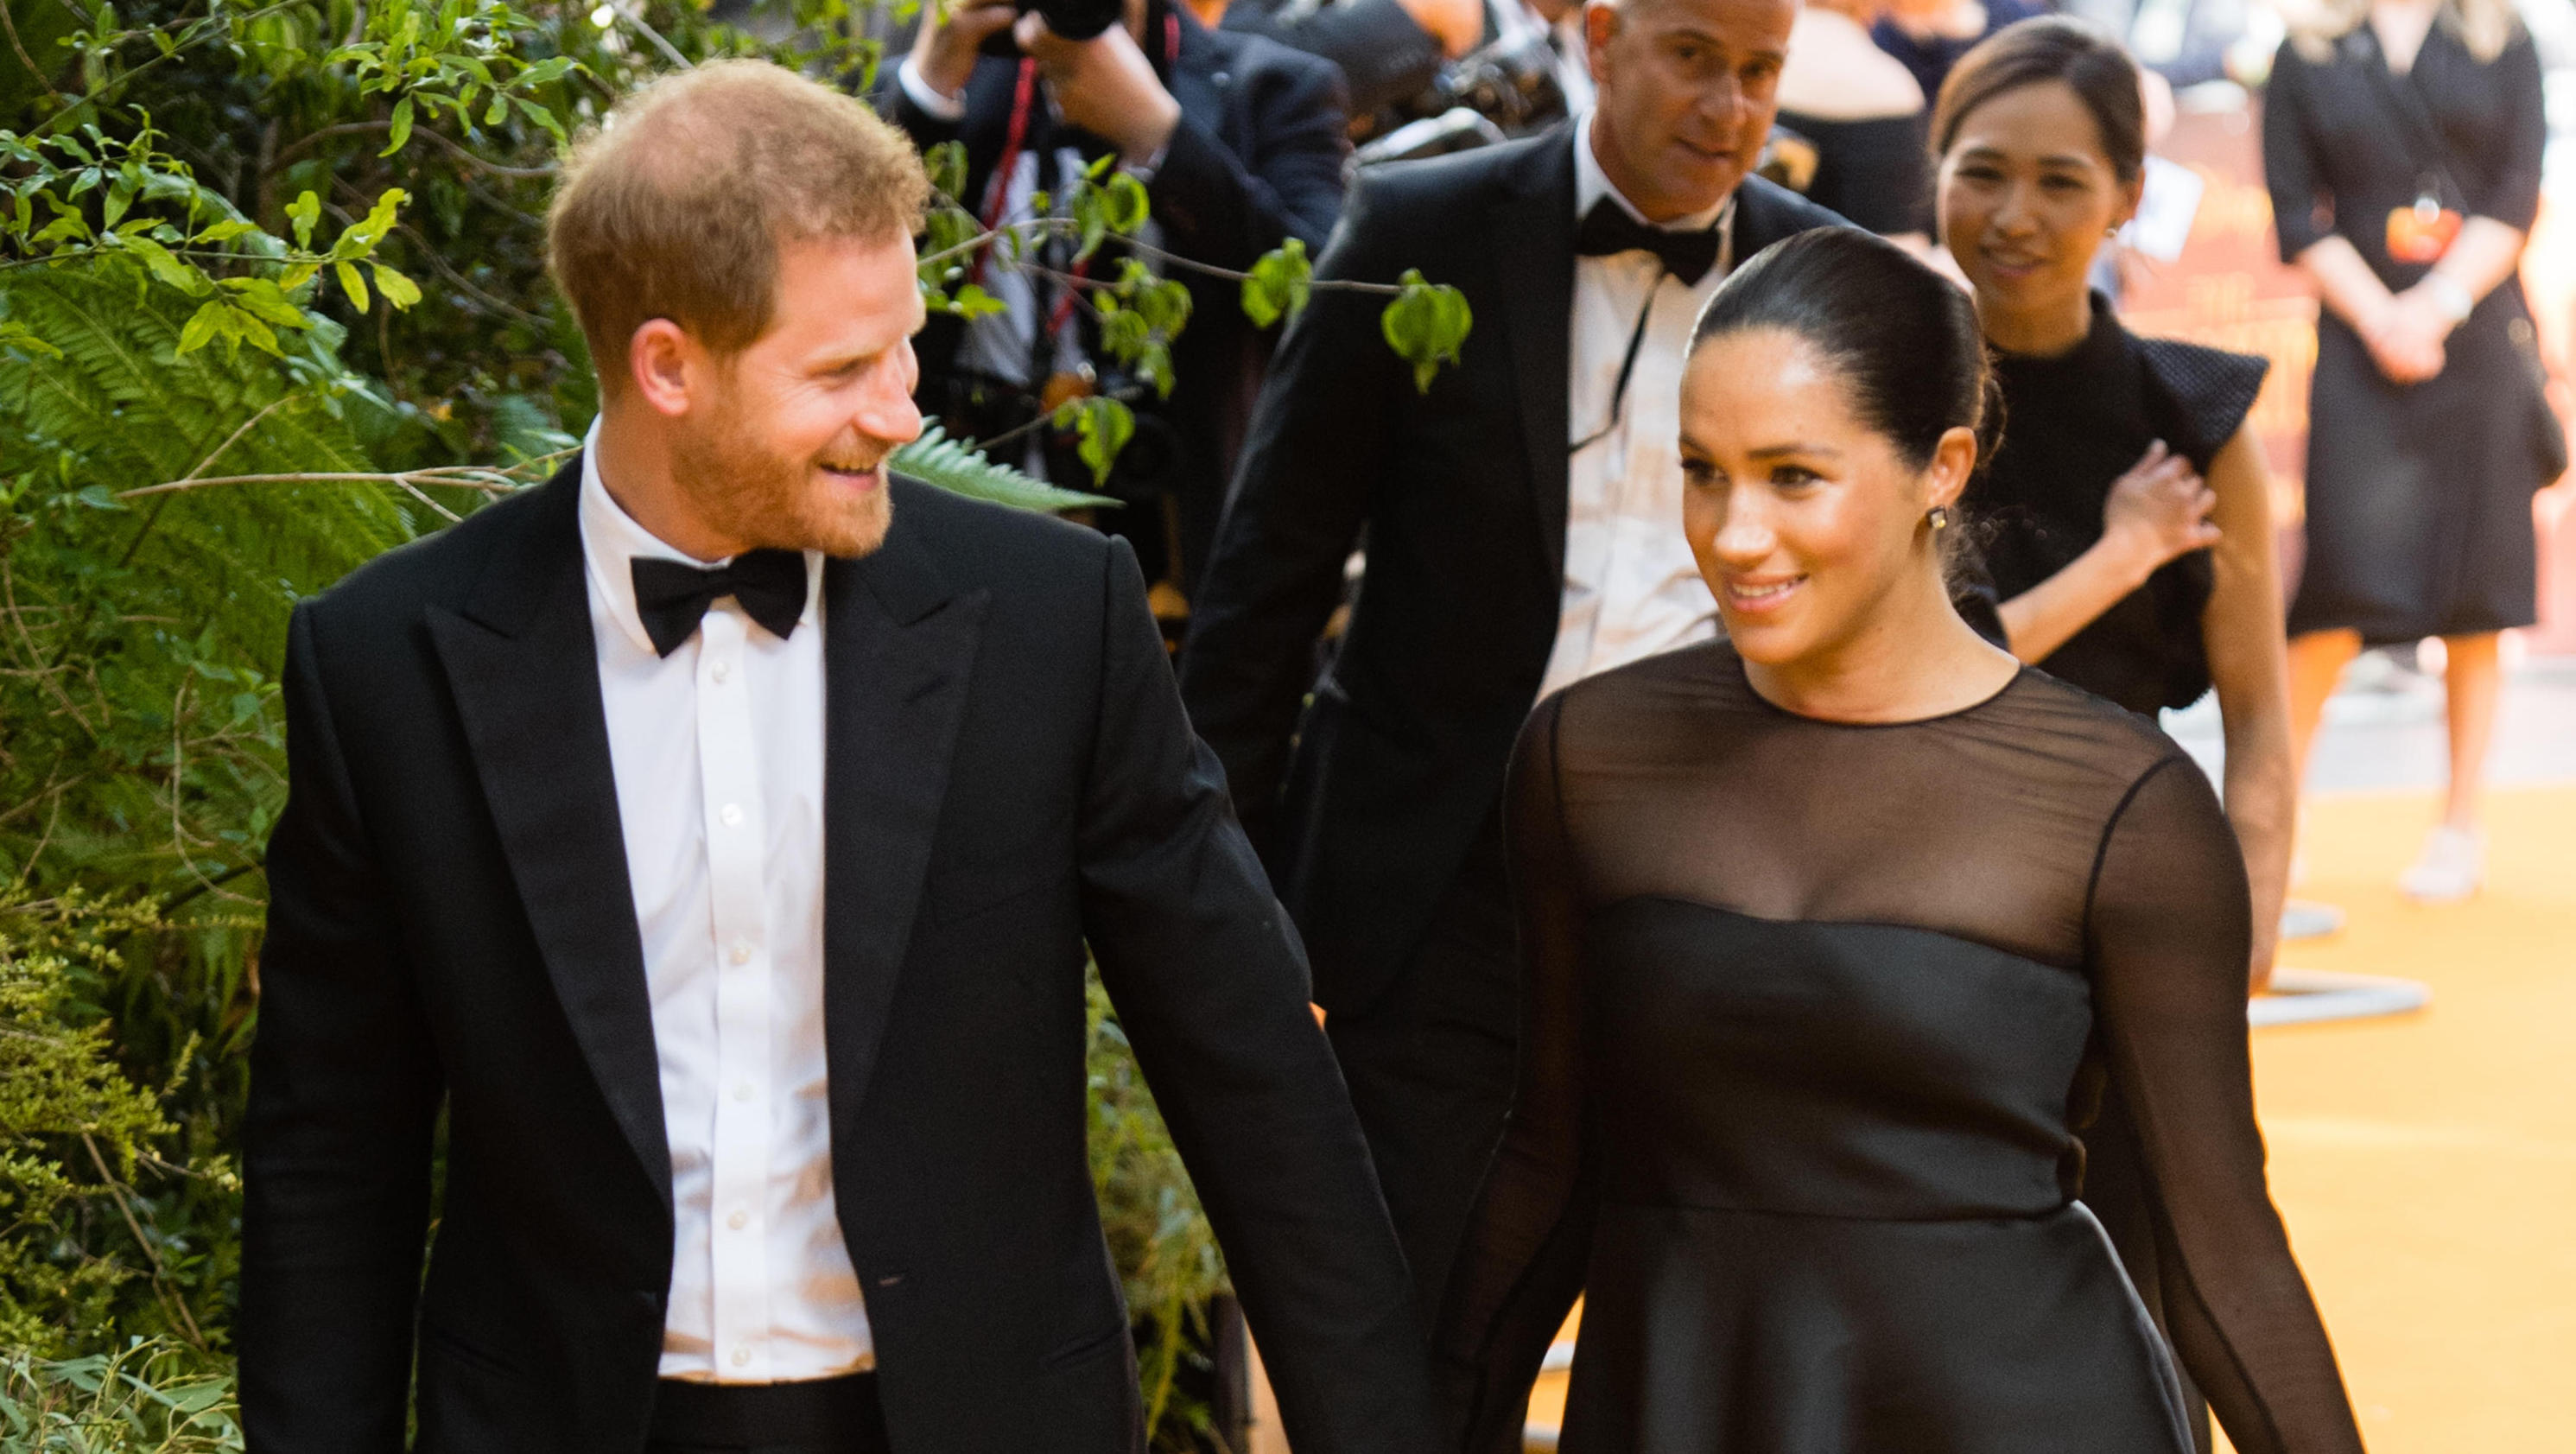 Meghan Markle S Style From Suits To The Royal Family Pictures Images, Photos, Reviews